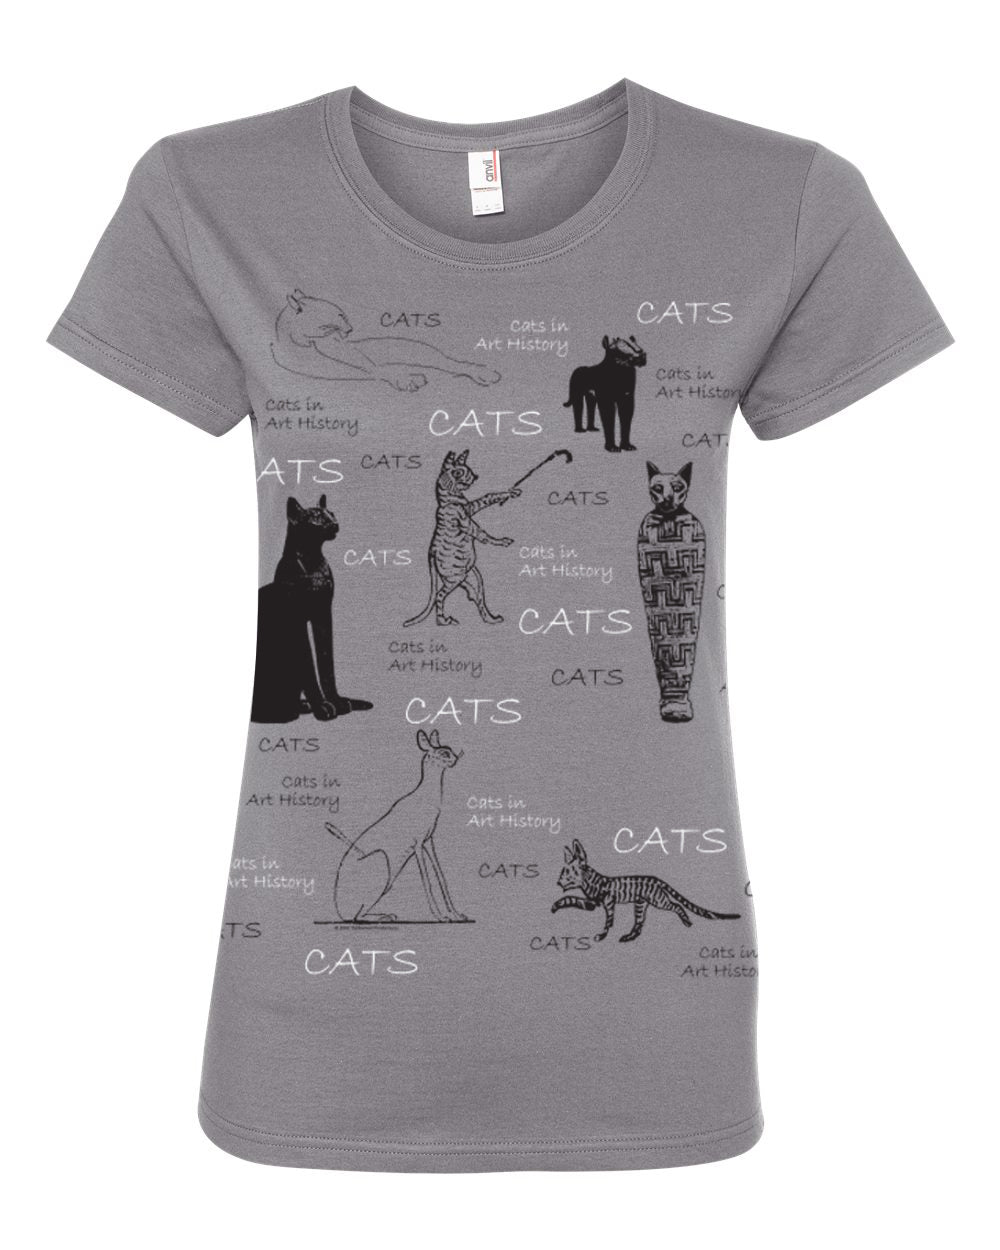 Cats In Art History Women's' Crew Tee